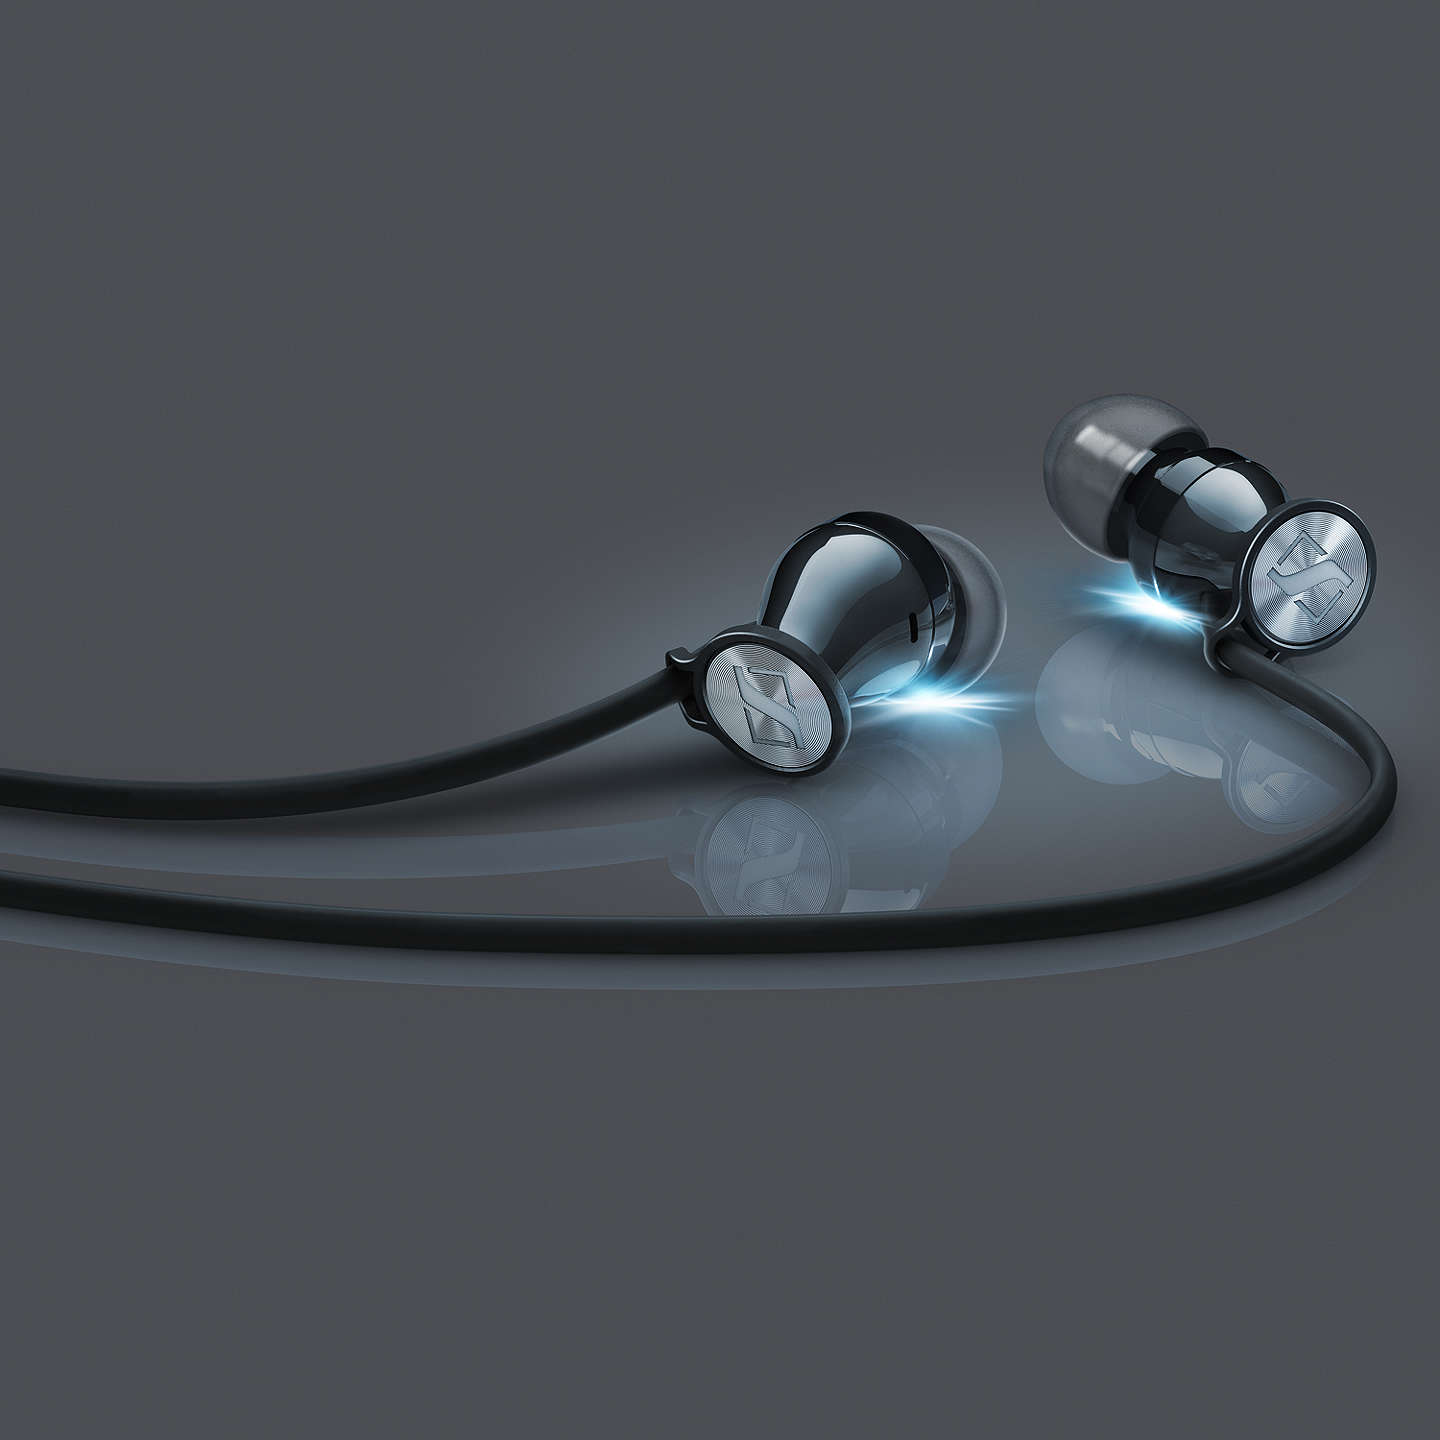 BuySennheiser MOMENTUM 2.0 I In-Ear Headphones with Mic/Remote for iOS Devices, Black/Chrome Online at johnlewis.com